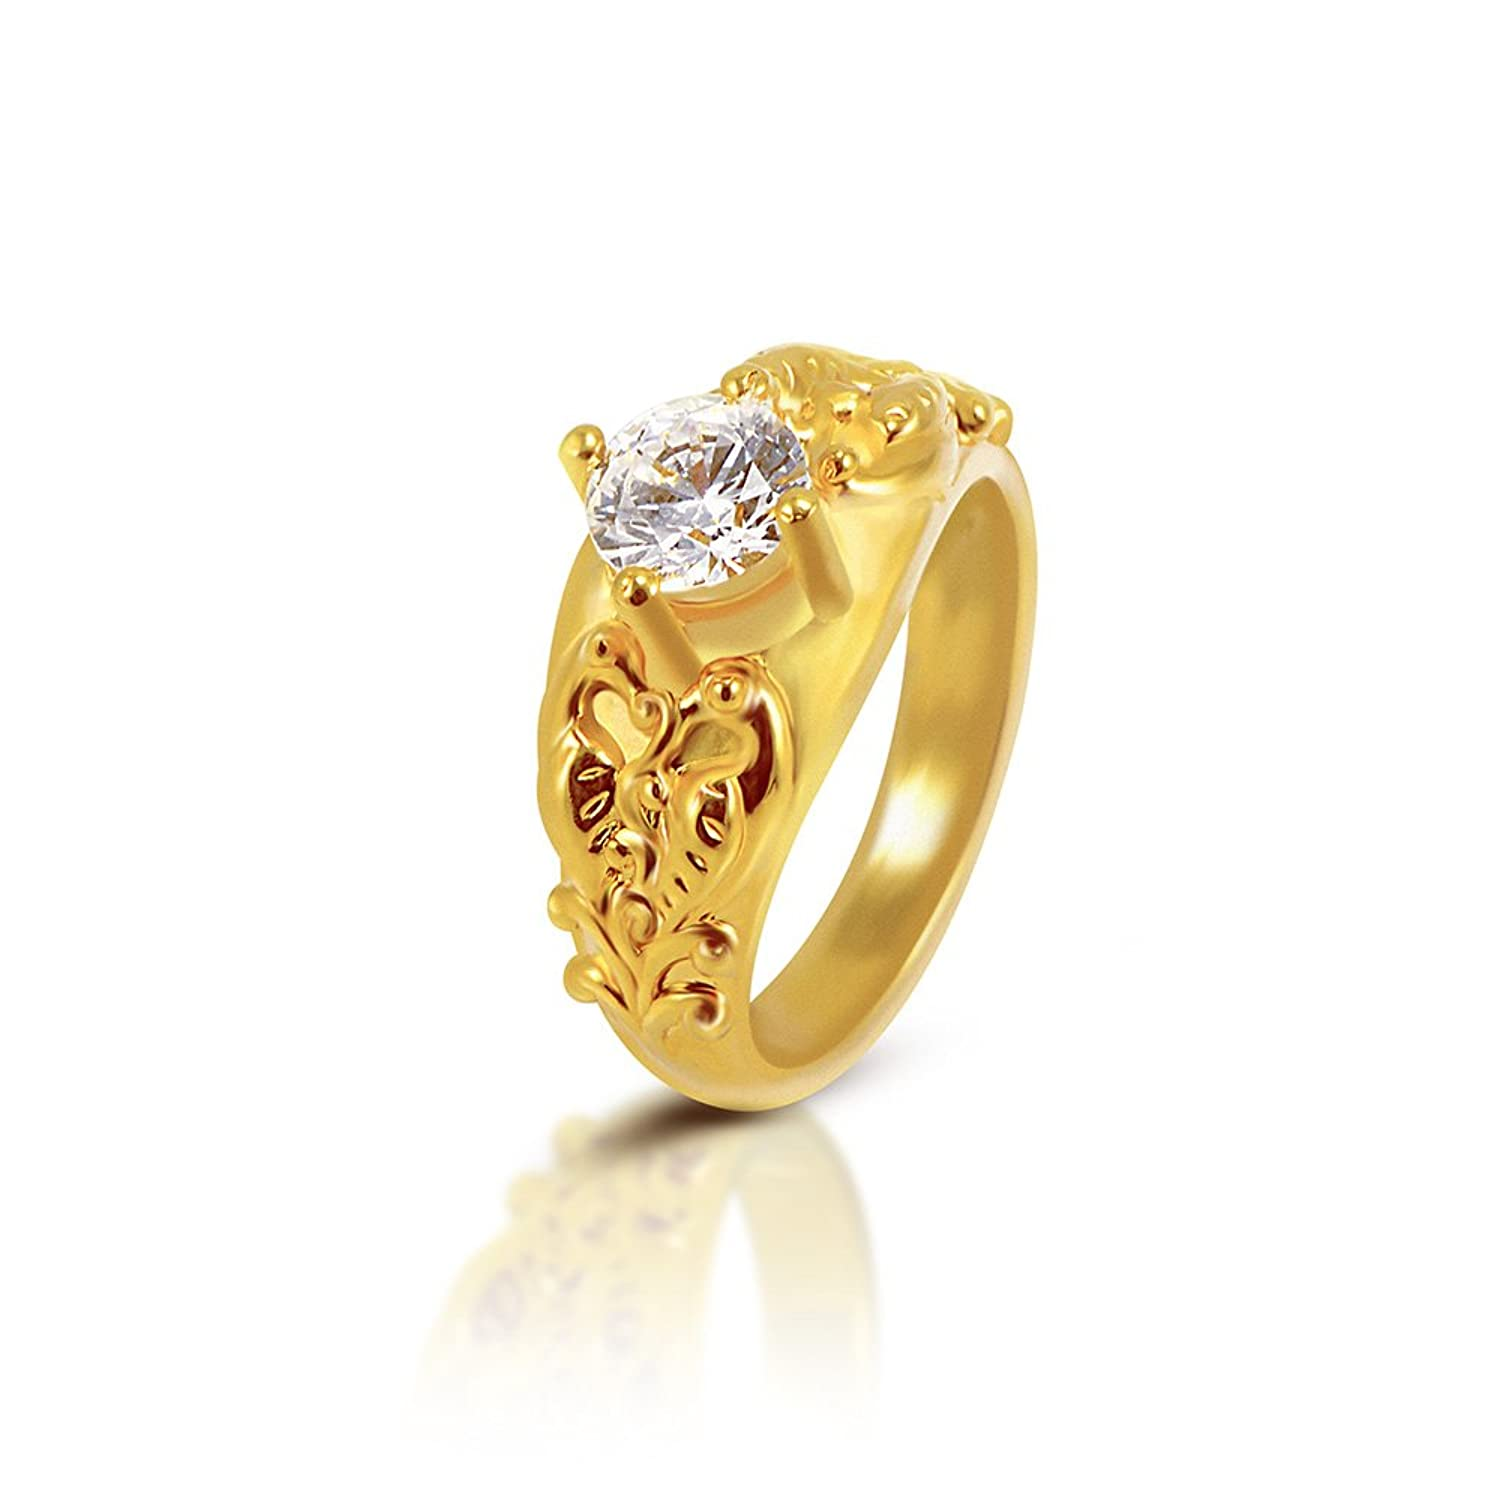 in ring online buy rings india yutika latest hallmarked plain by bis gold list search candere kalyan jewellers